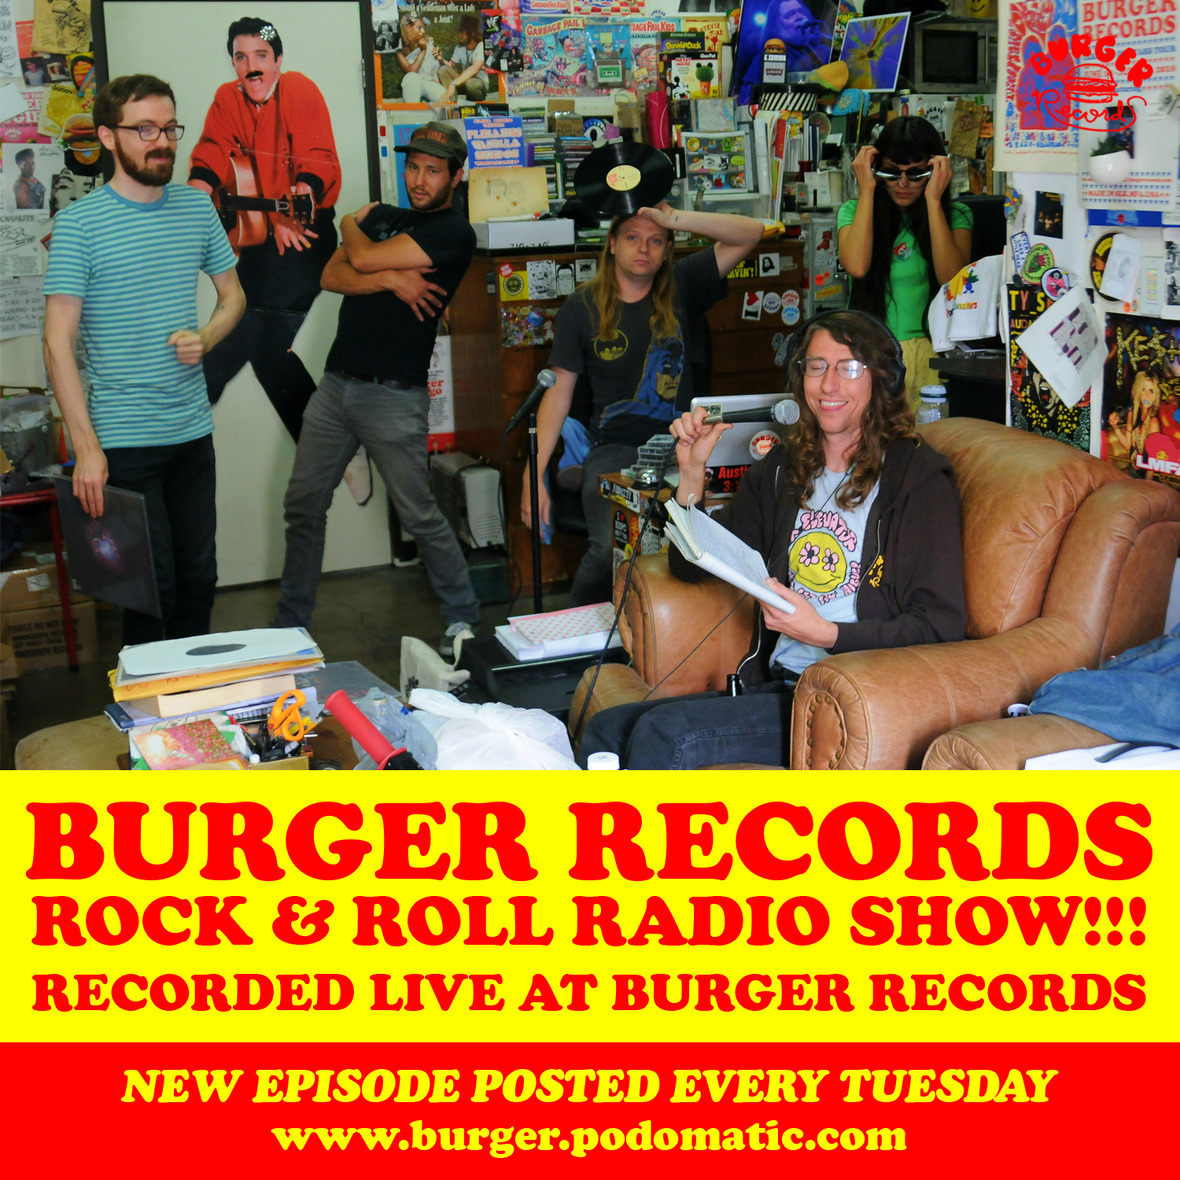 ROCK N ROLL RADIO SHOW COVER27